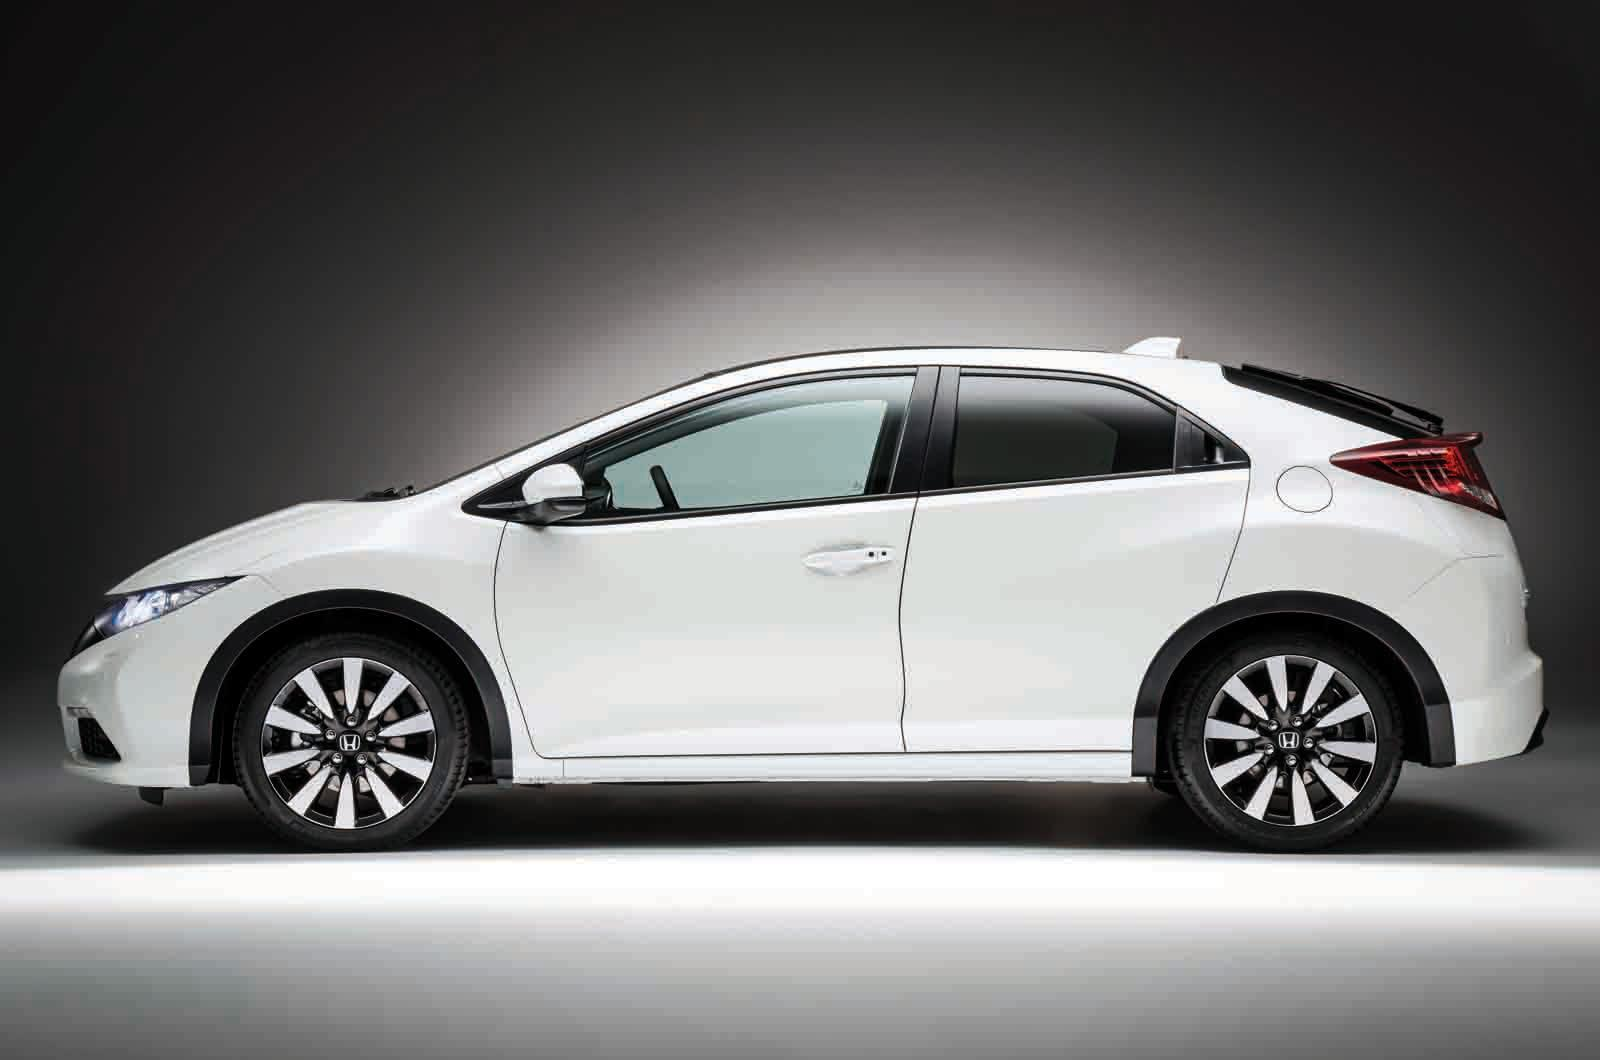 Honda Civic 2014 #3